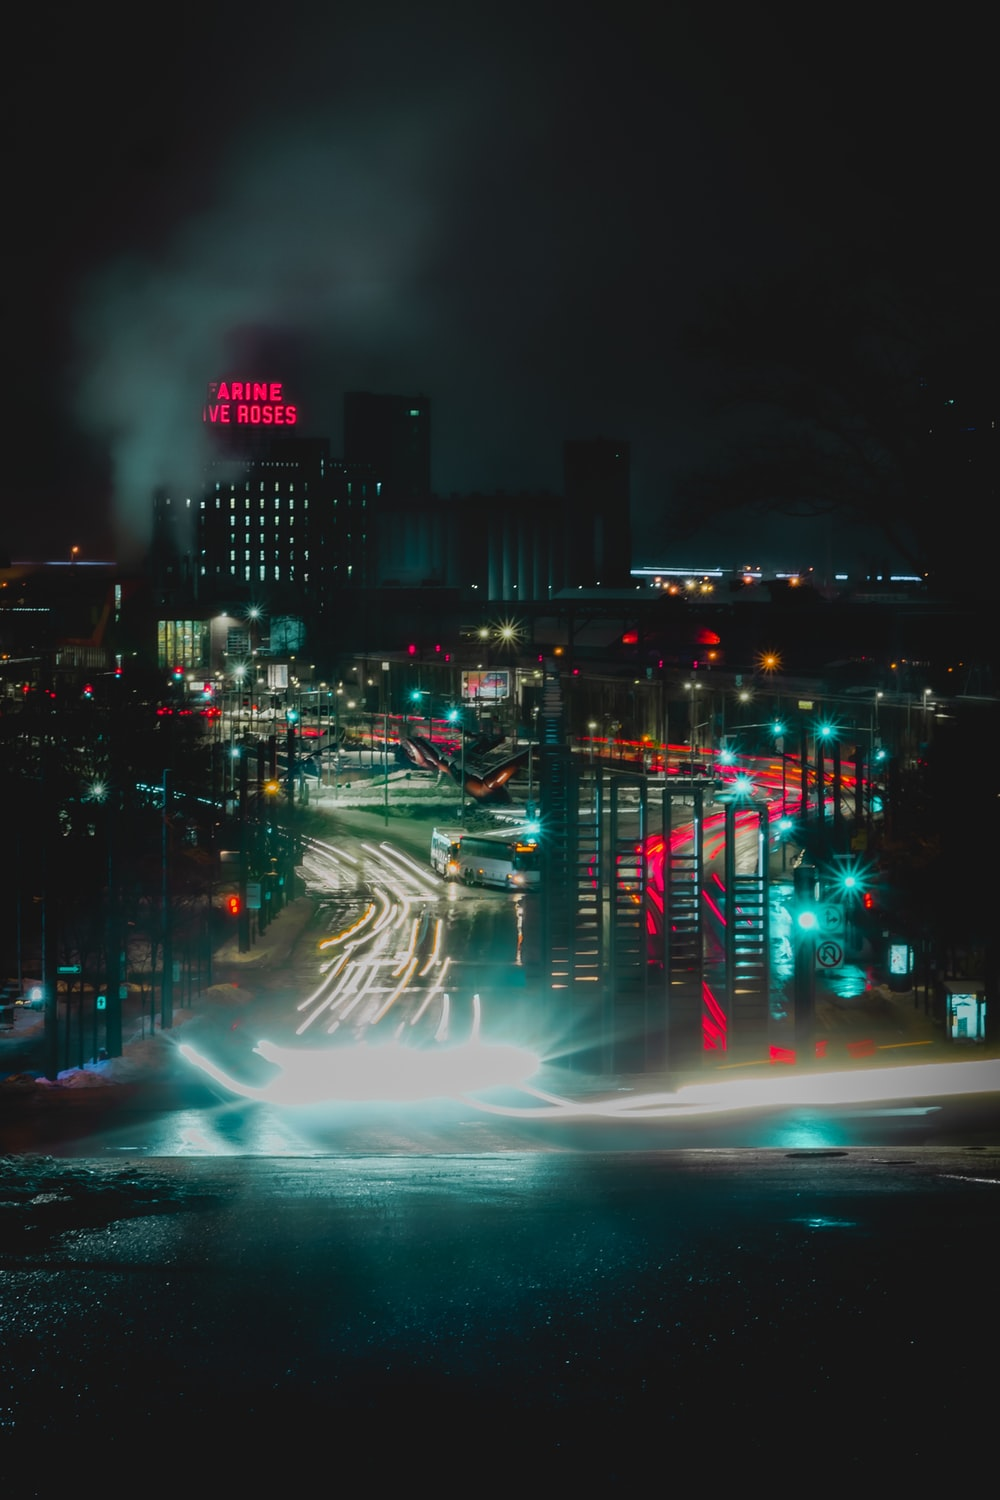 timelapsed photography of vehicles and buildings